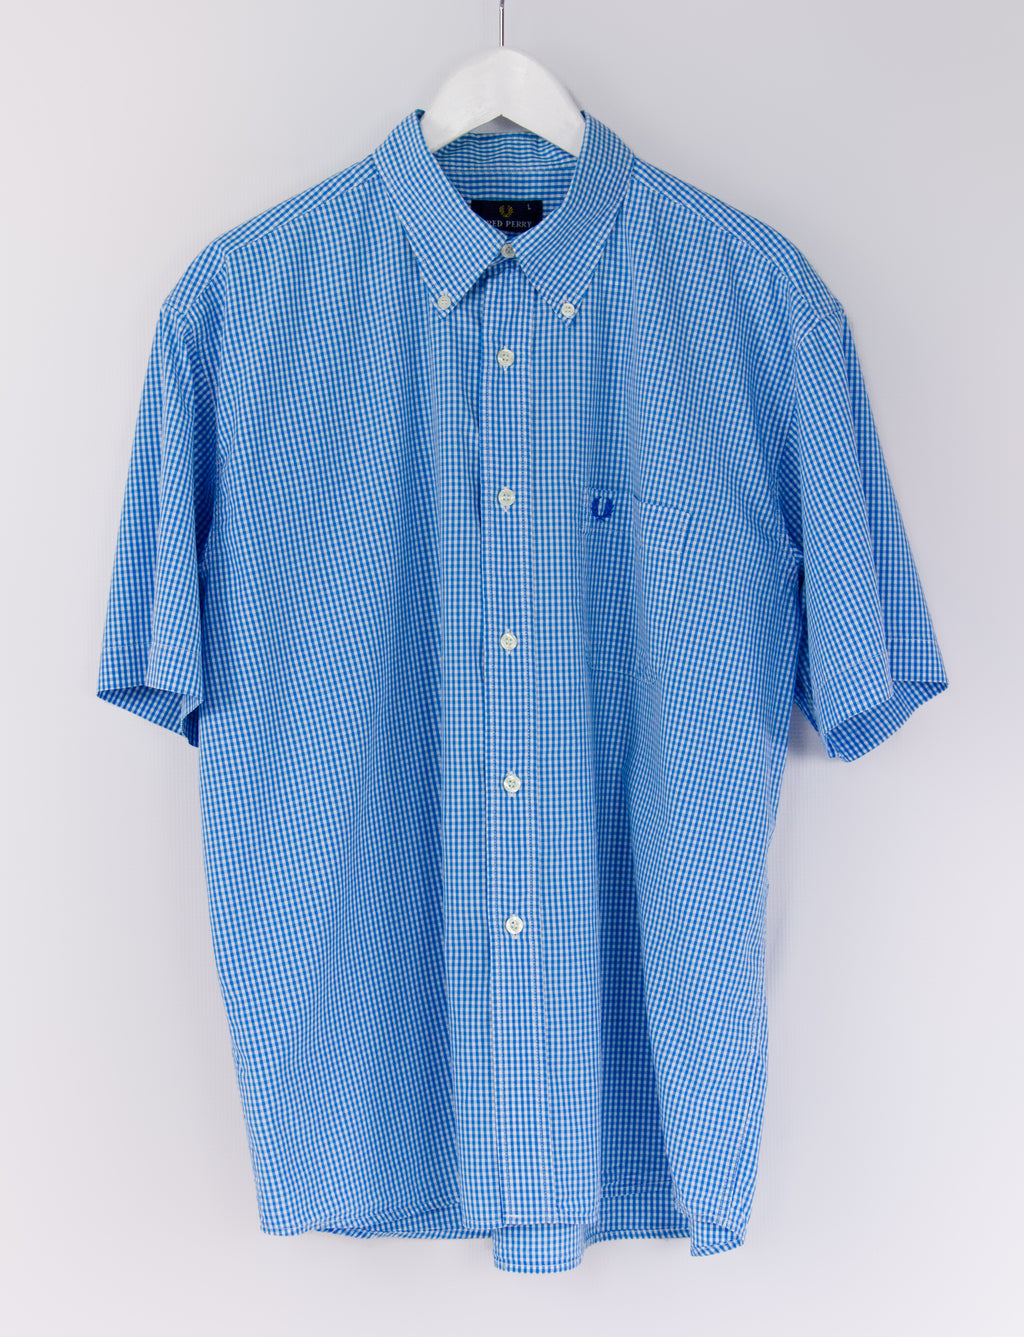 FRED PERRY 100% Cotton Blue Gingham Check Summer Shirt, SIZE L - secondfirst